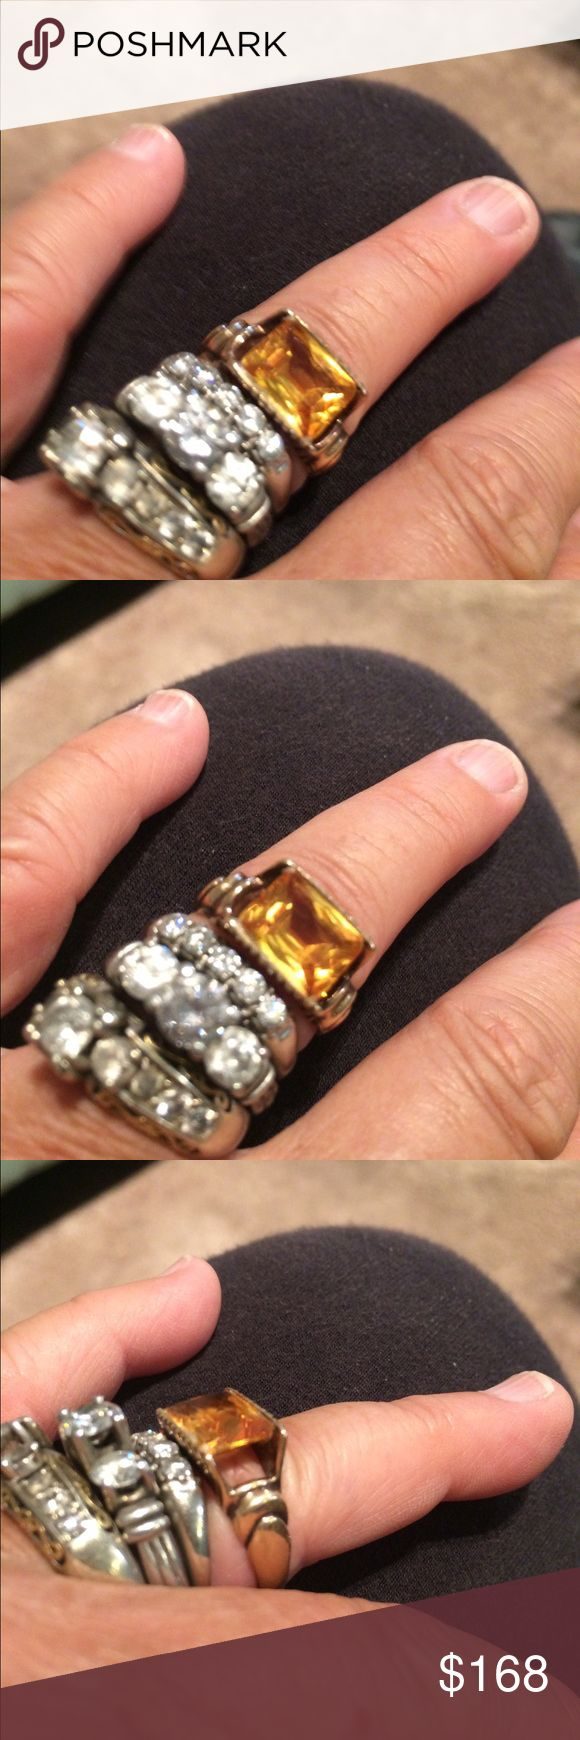 14k gold Citrine ring the November birth stone . Such a beautiful ring! 14k gold Citrine ring the November birth stone Jewelry Rings